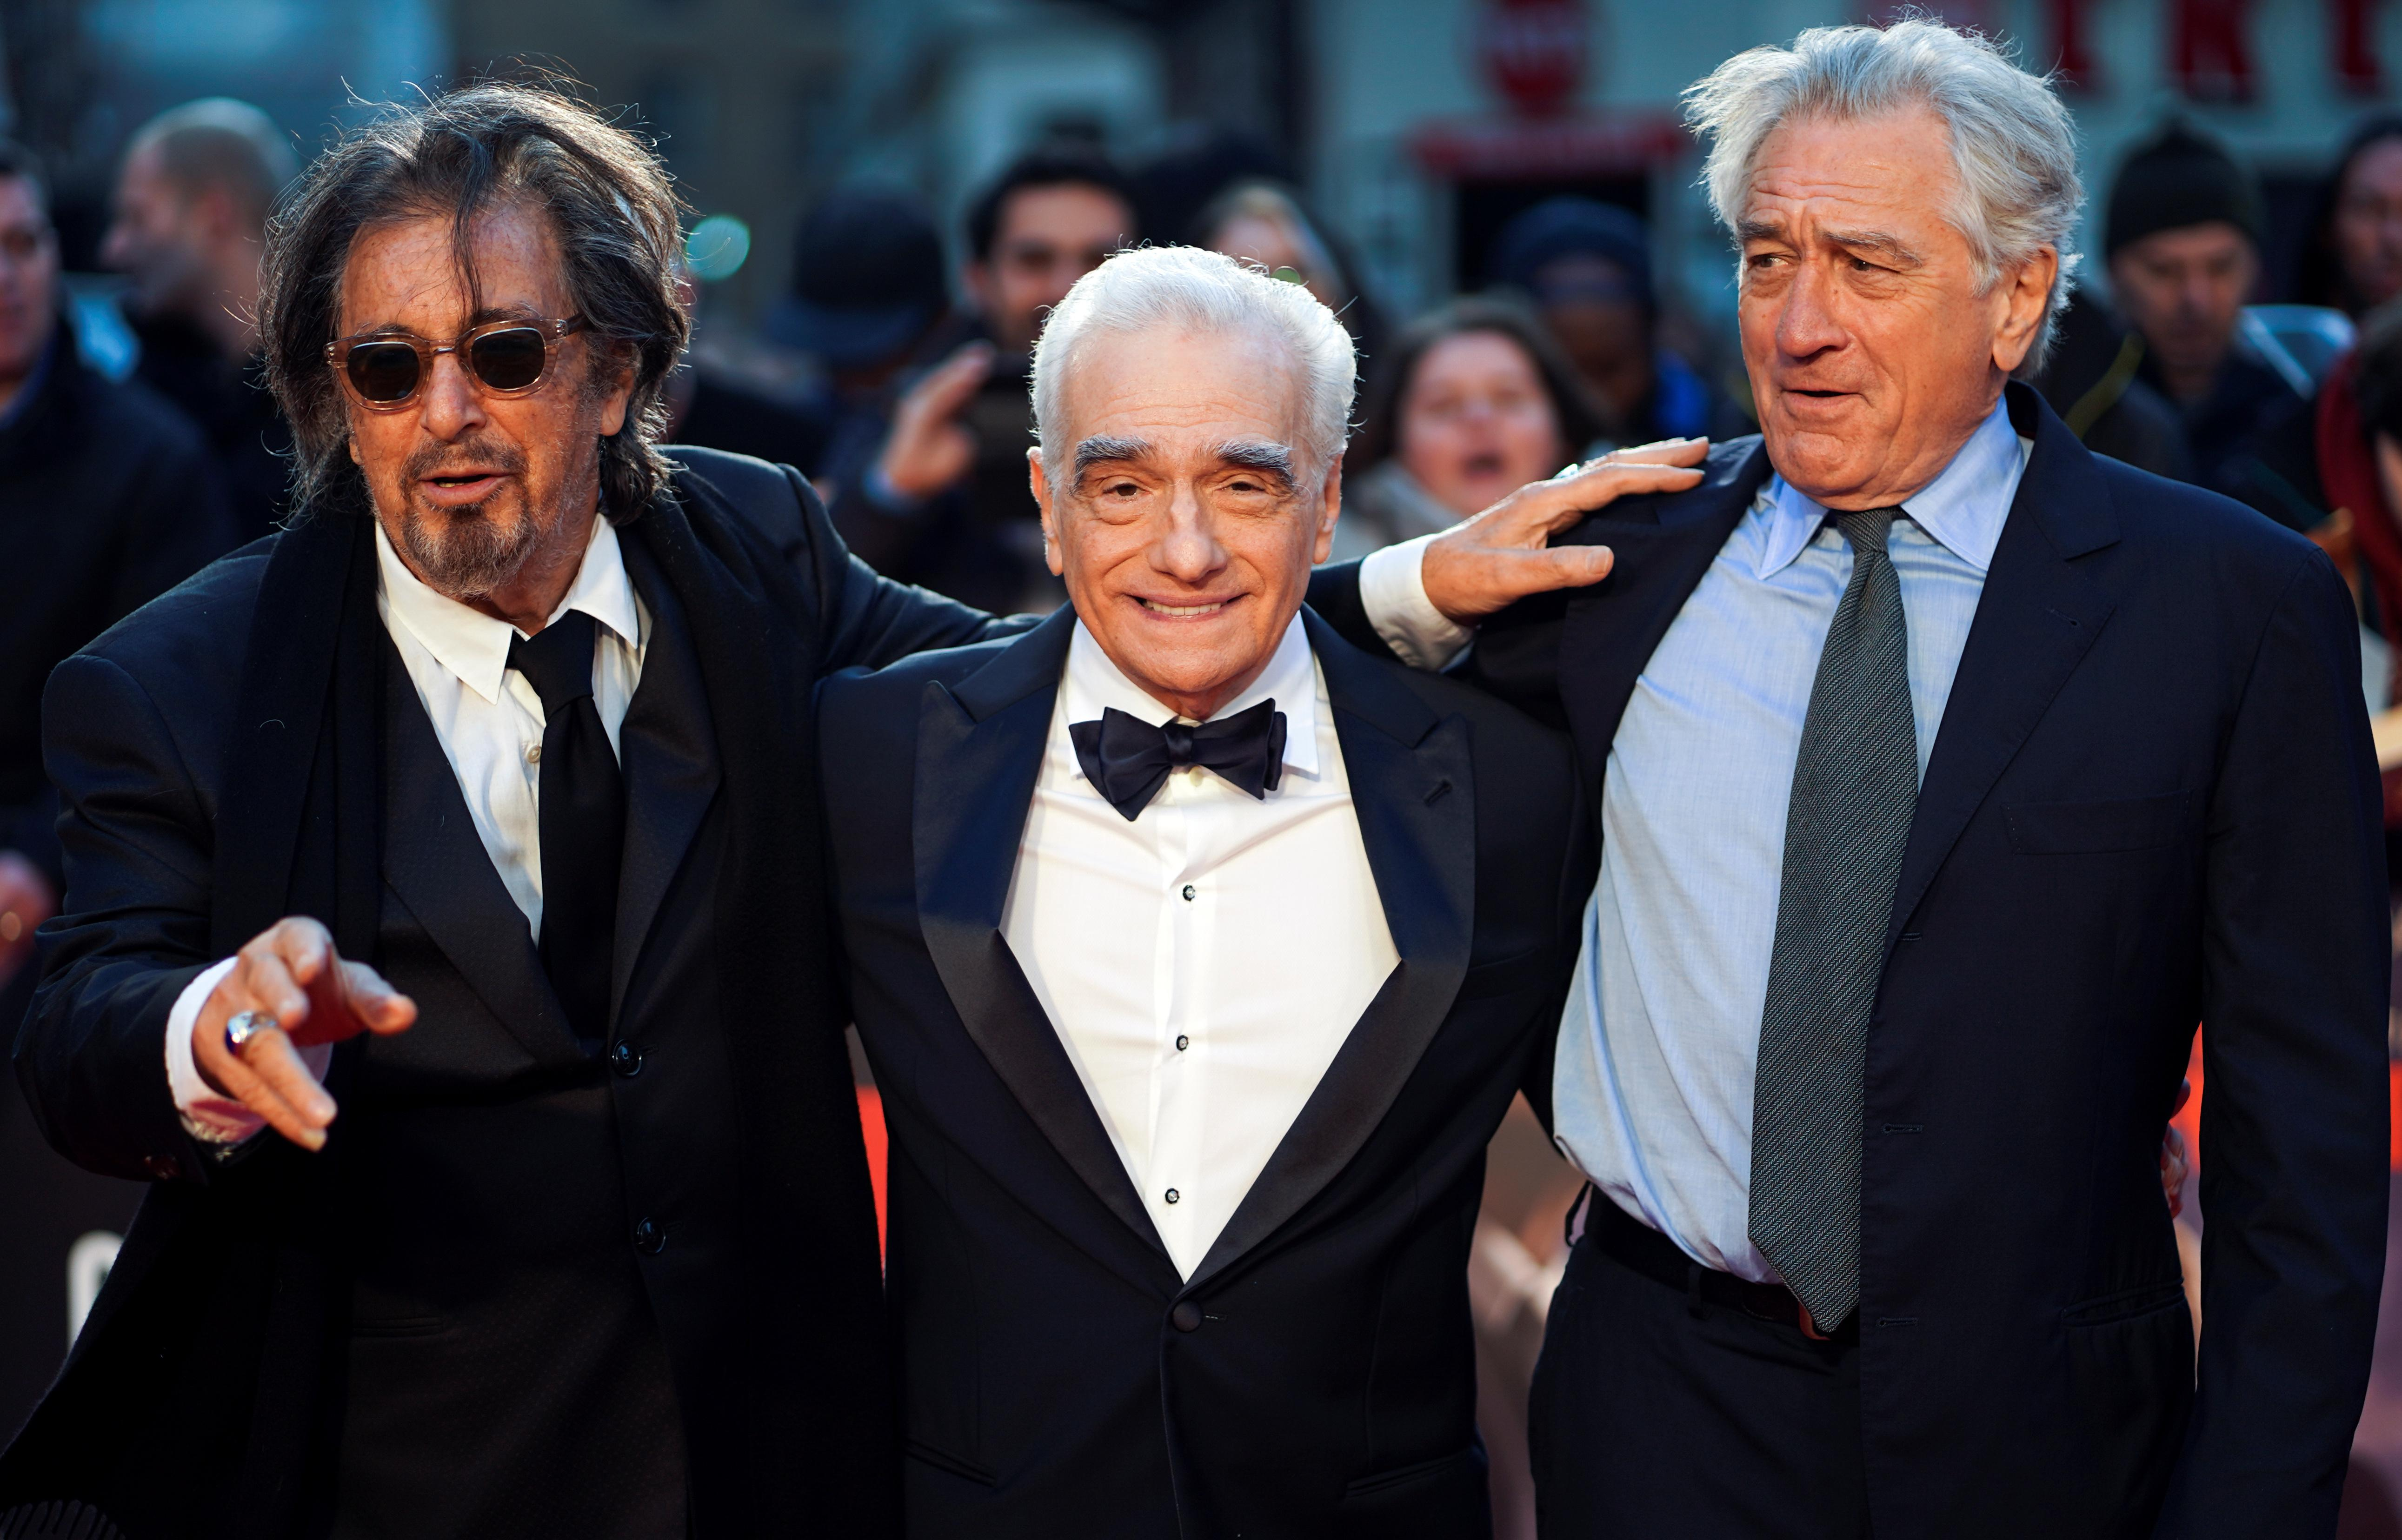 Scorsese says he wanted to 'enrich' past De Niro work with 'The...